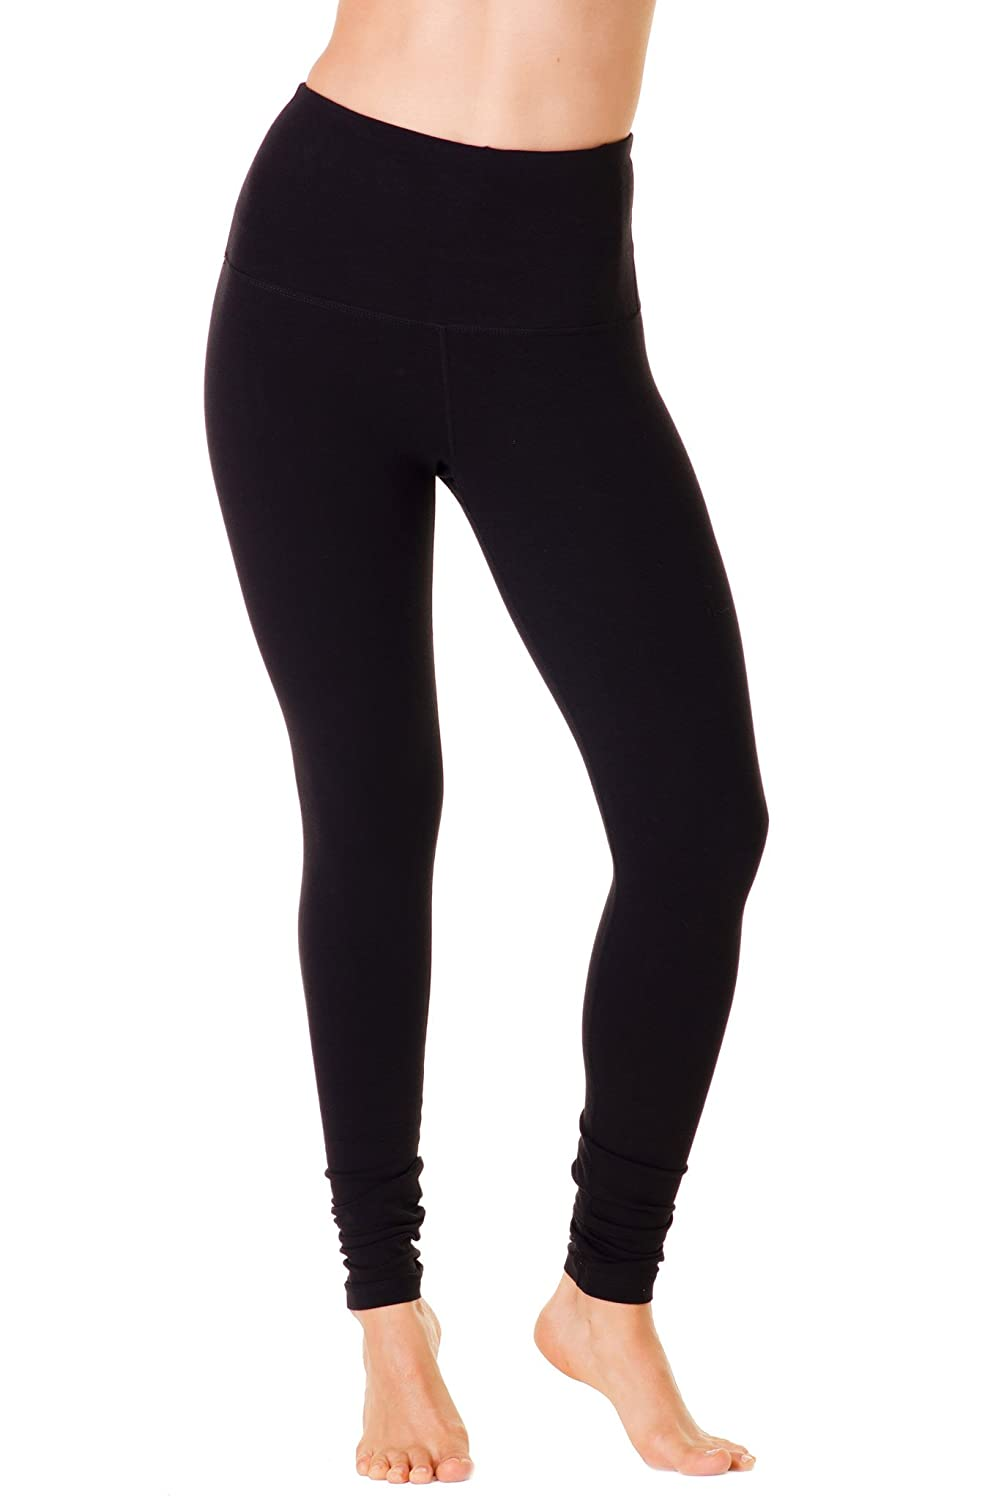 90 Degree By Reflex - High Waist Cotton Power Flex Leggings ...